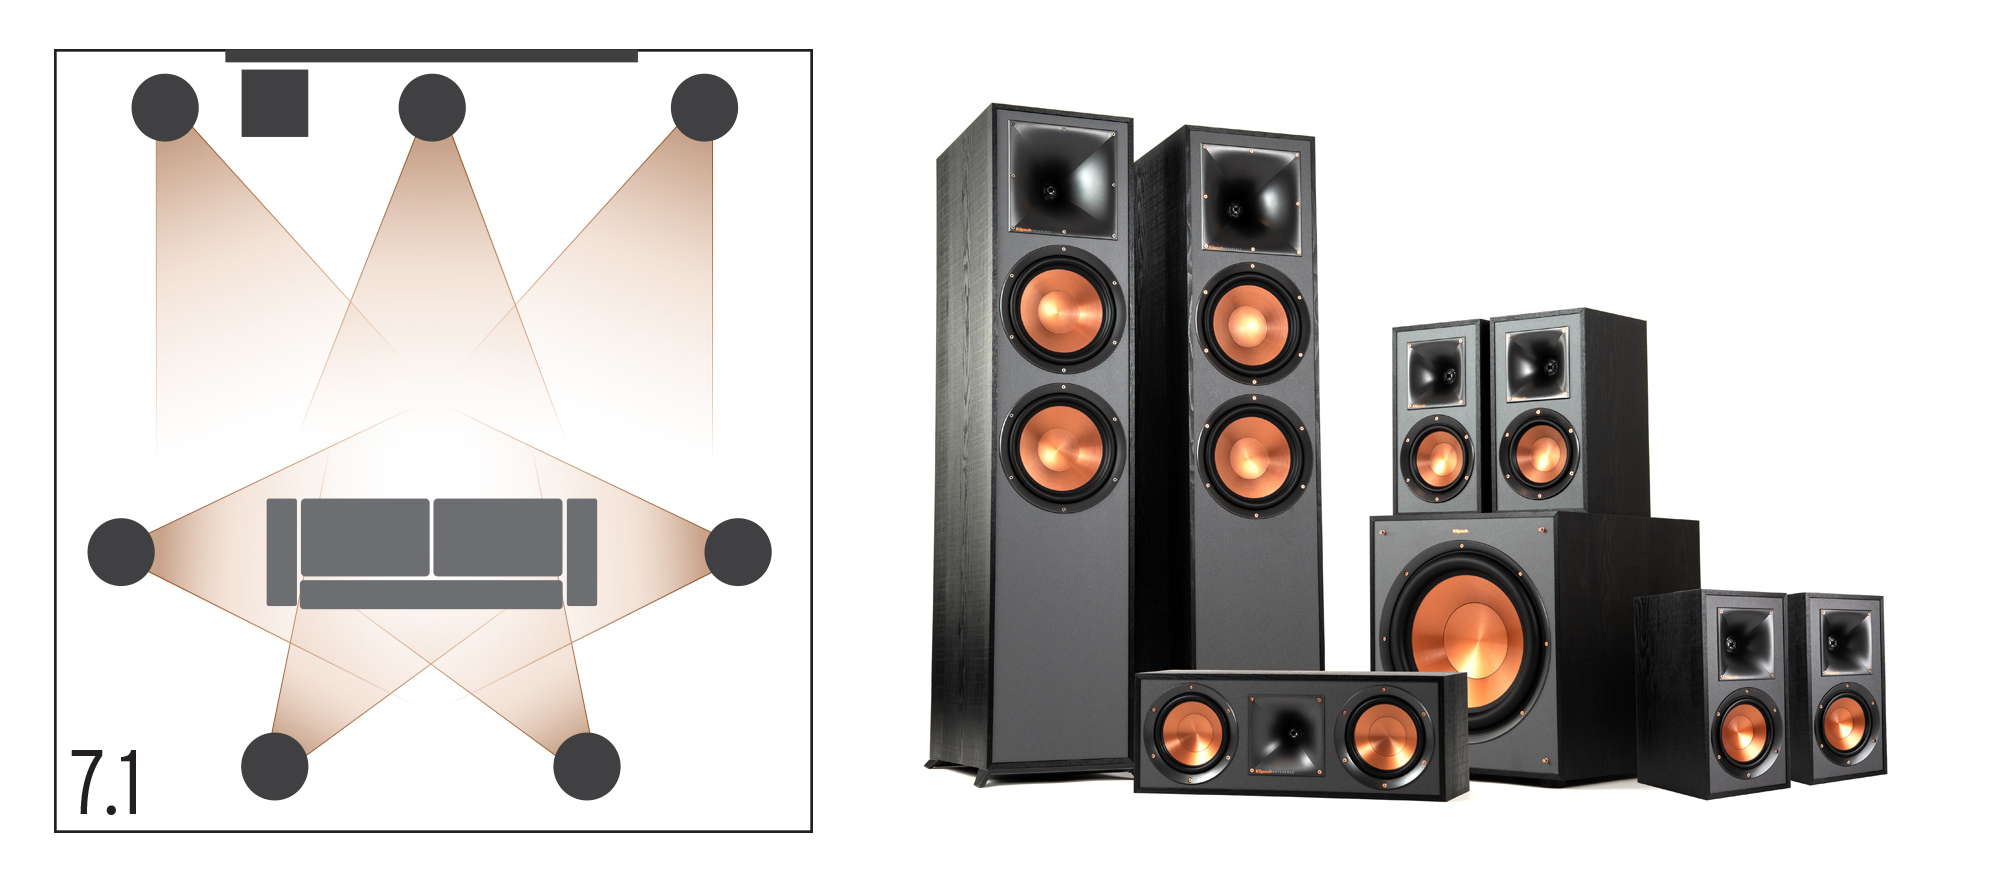 Klipsch surround sound 7.1 home theater configuration